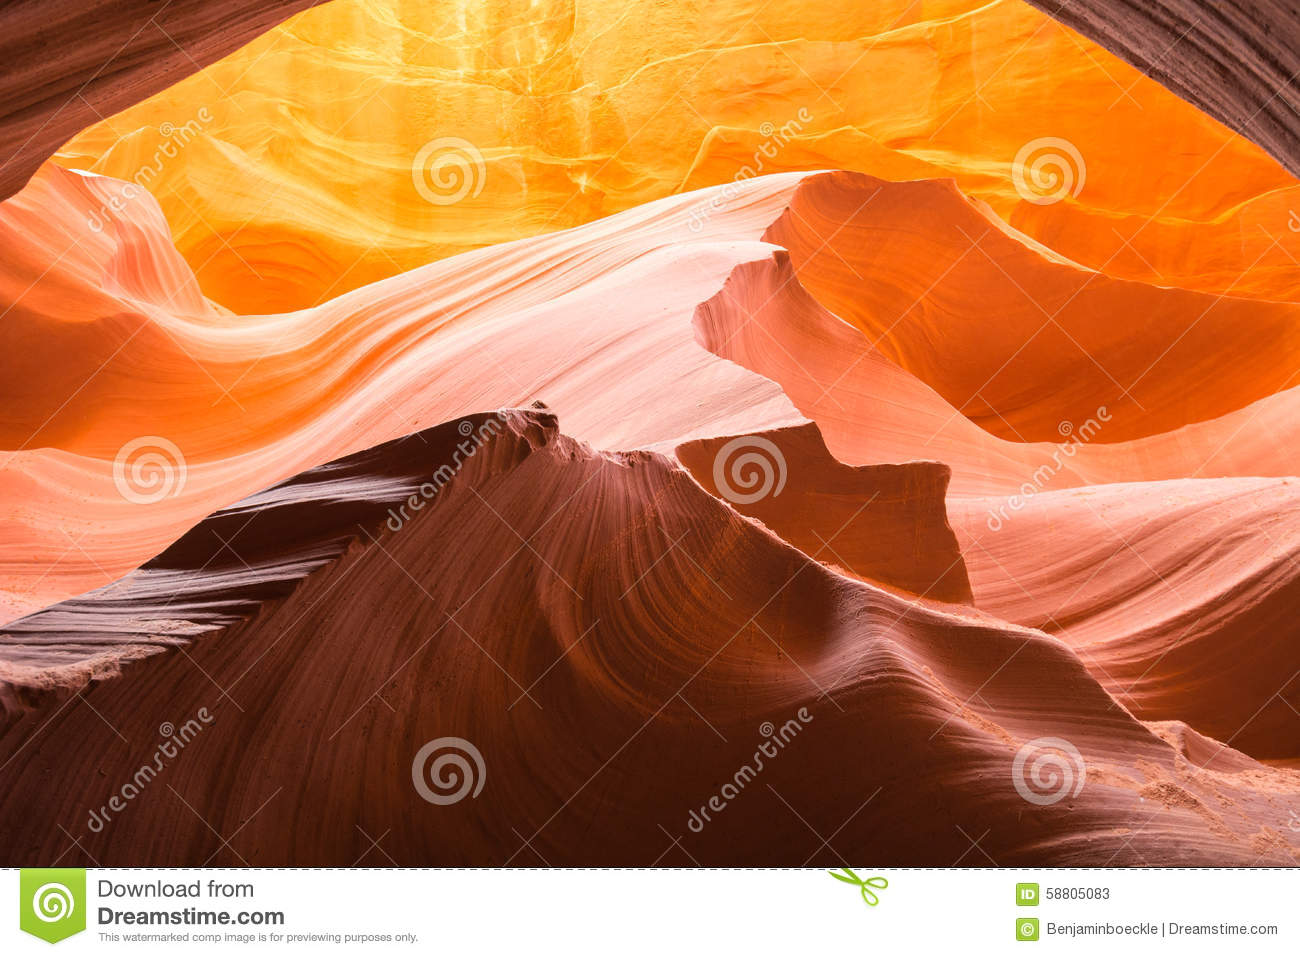 Antelope Canyon, Arizona, USA, Lake Powell